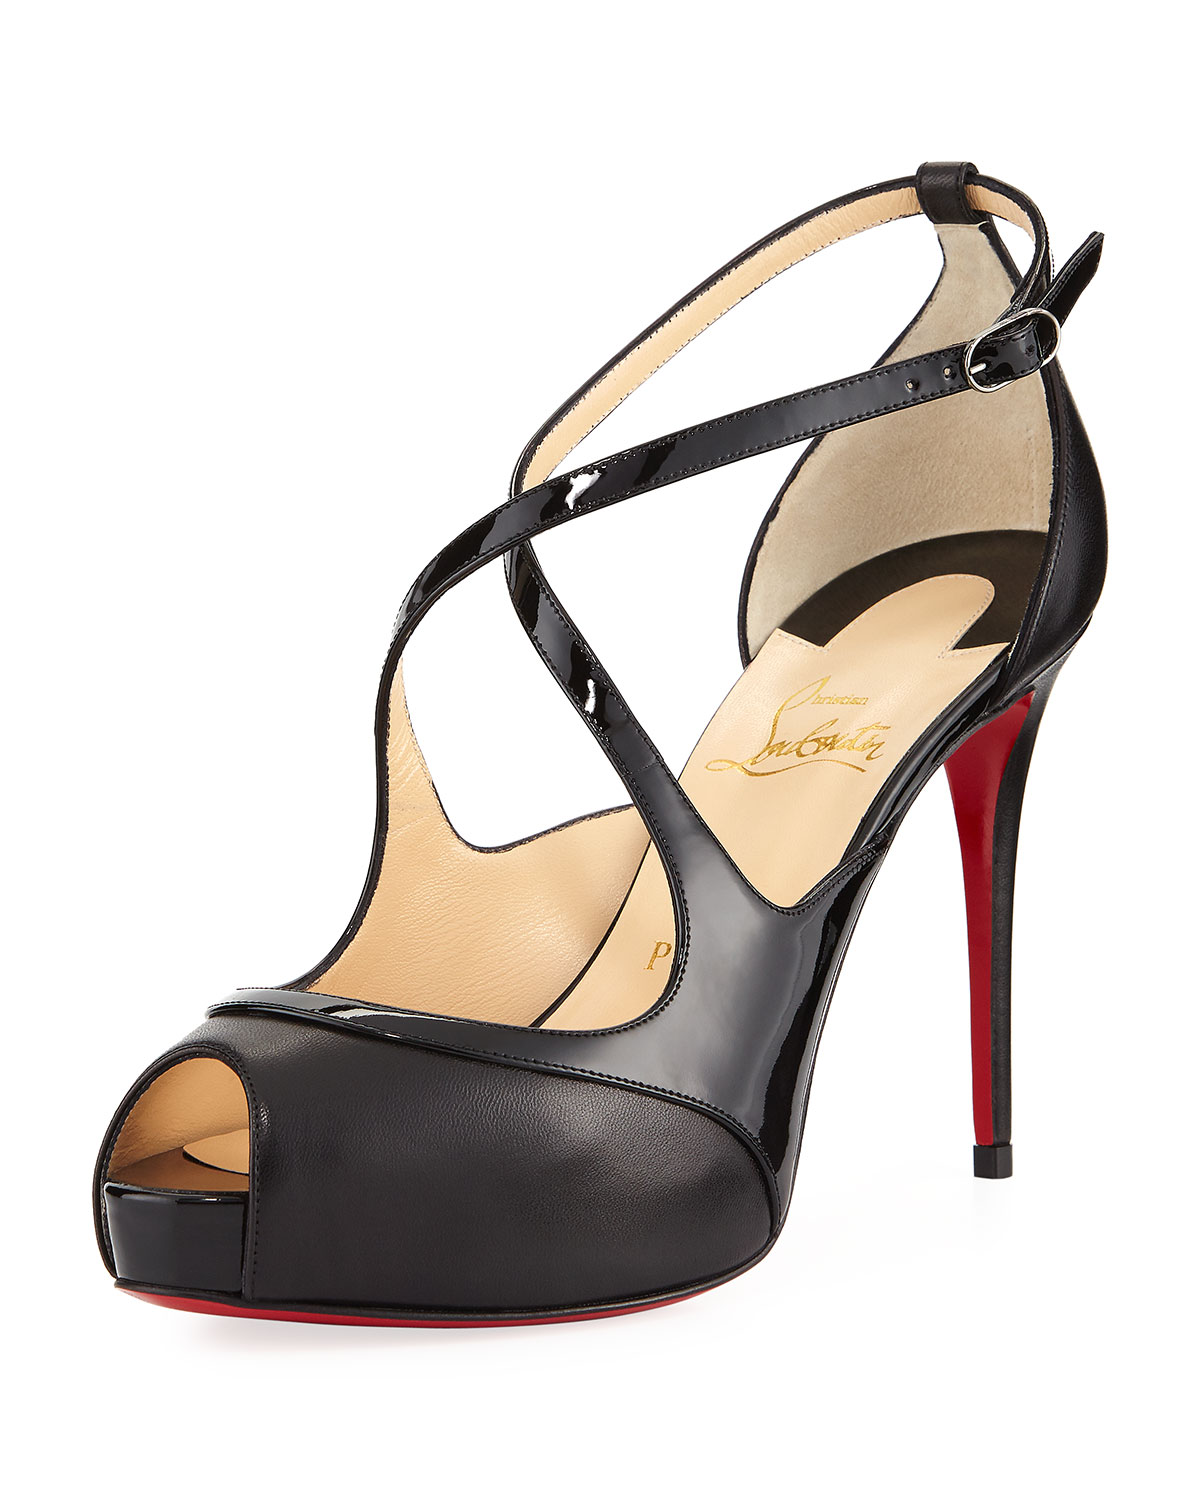 b0d164f3bd46 Christian Louboutin Mirabella Strappy 100mm Red Sole Pumps